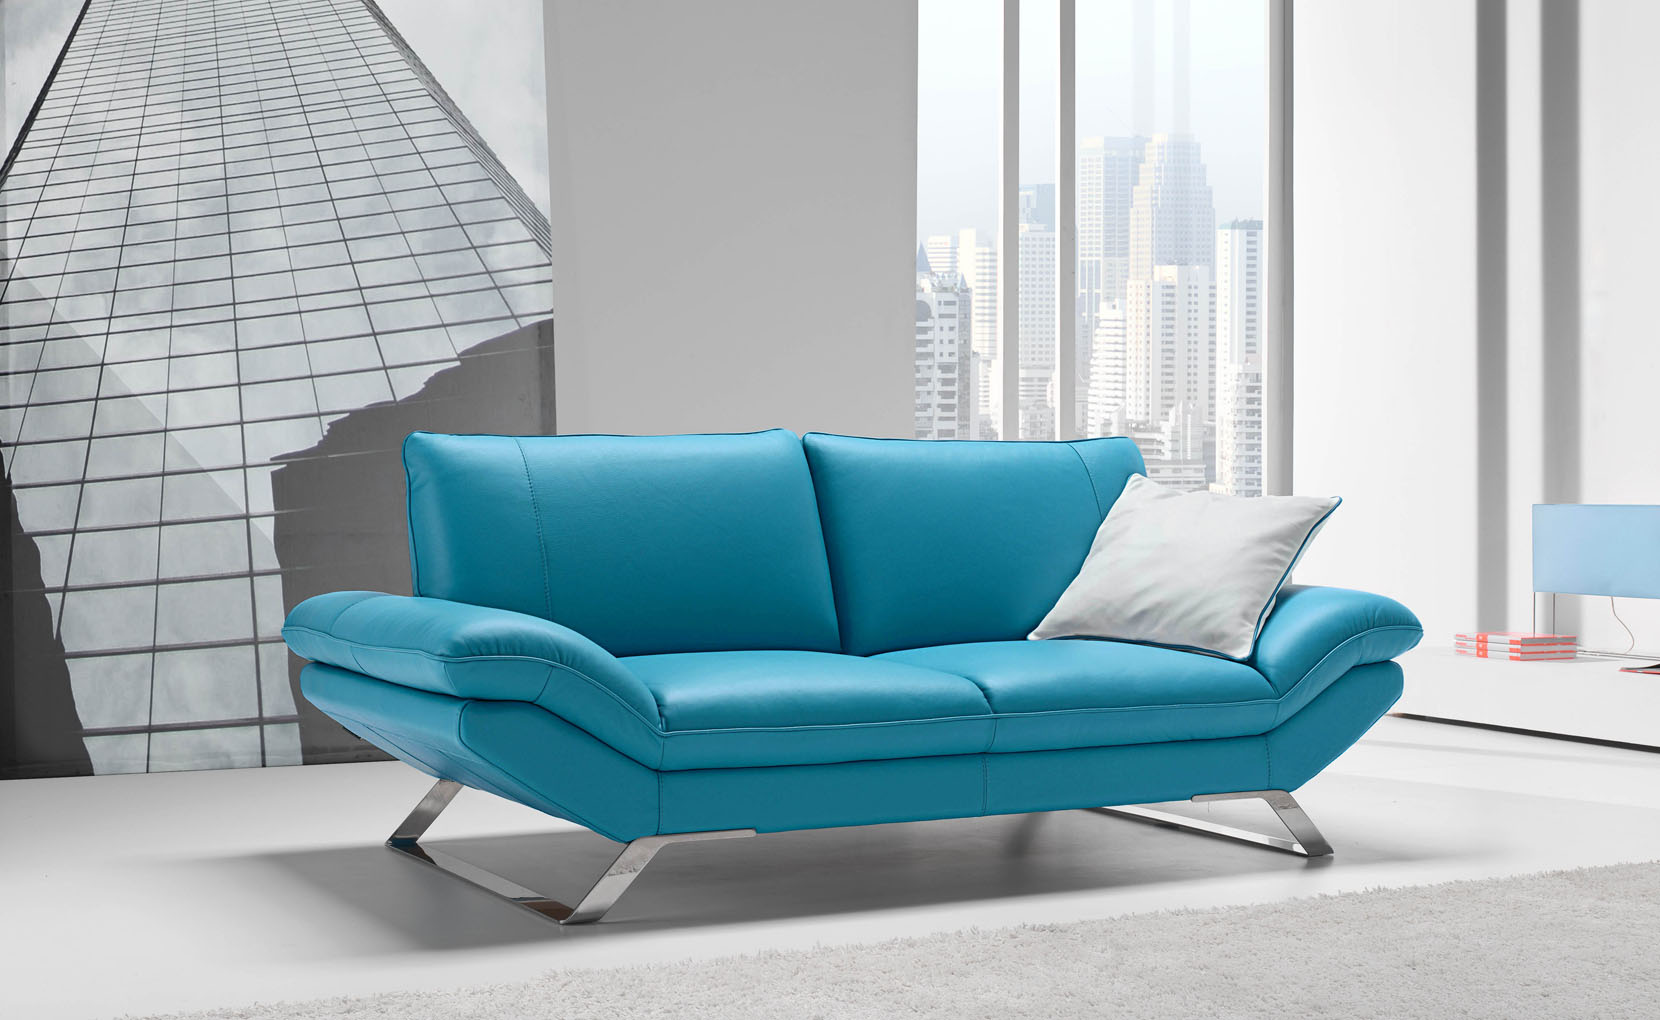 Ego Italiano Sofa Available At The Ultimate Living Company